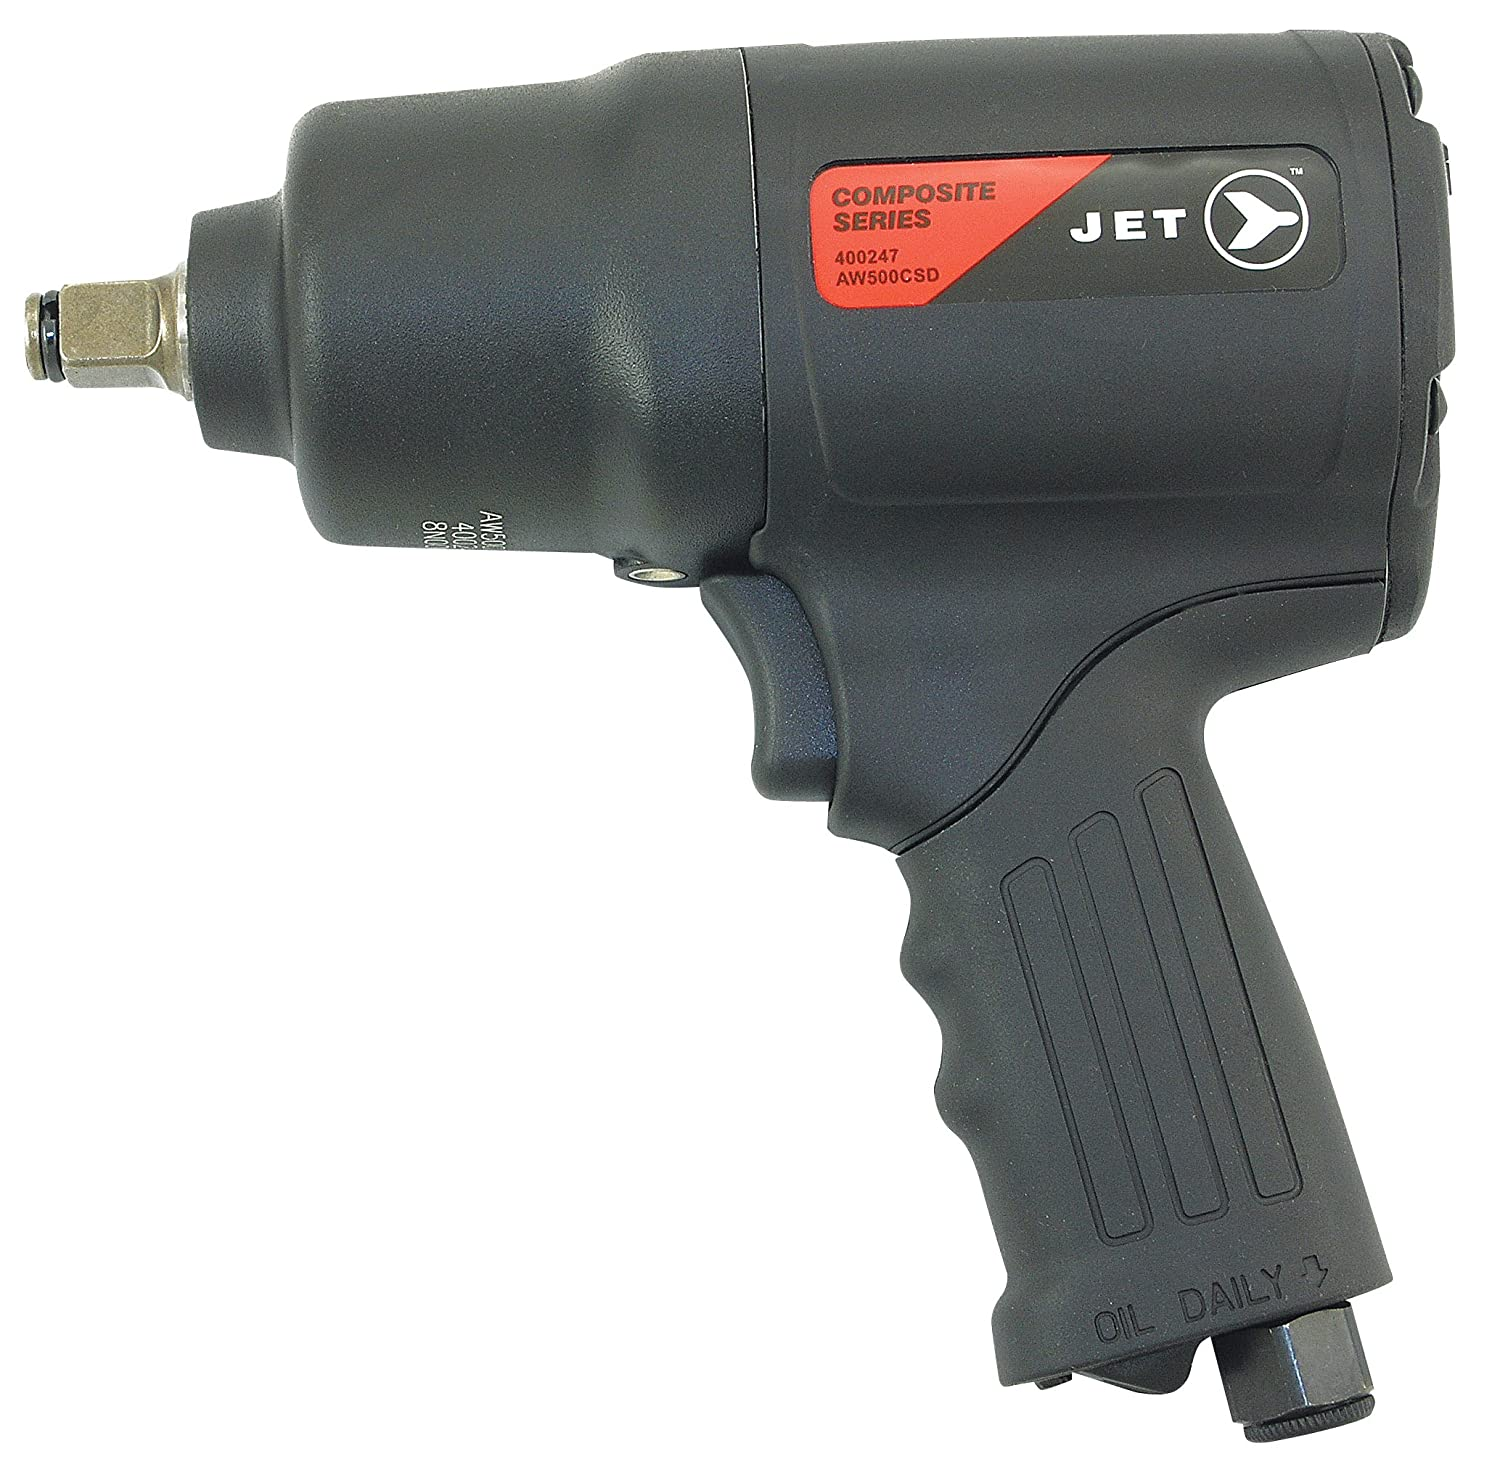 Jet 400247-1/2 Drive Composite Series Impact Wrench – Super Heavy Duty JET Equipment & Tools